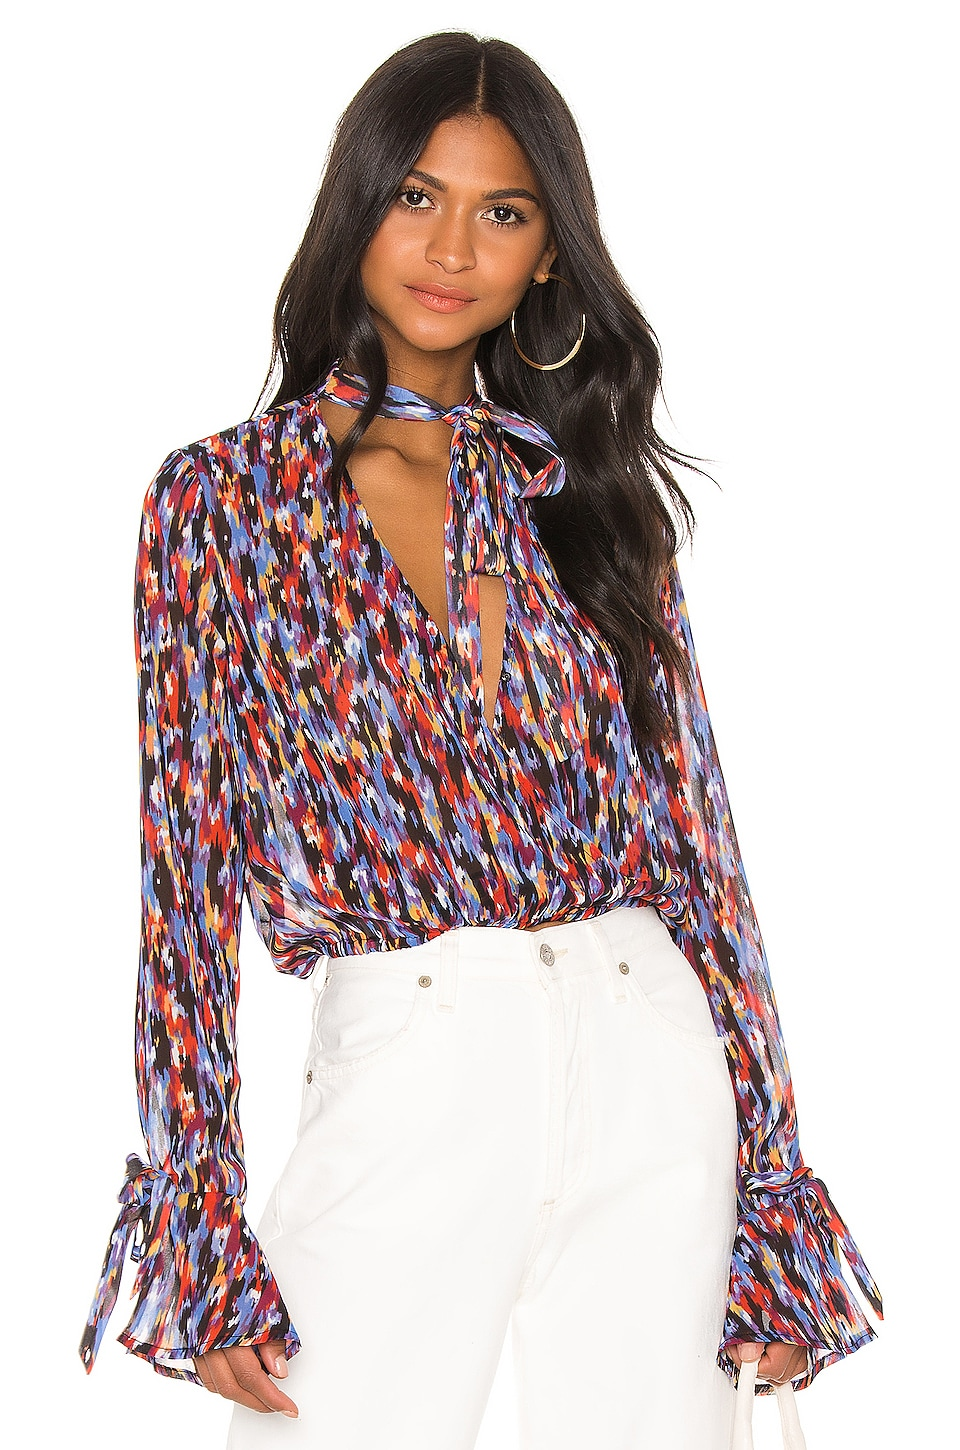 House of Harlow 1960 X REVOLVE Joli Tie Cuff Blouse in Blue Multi